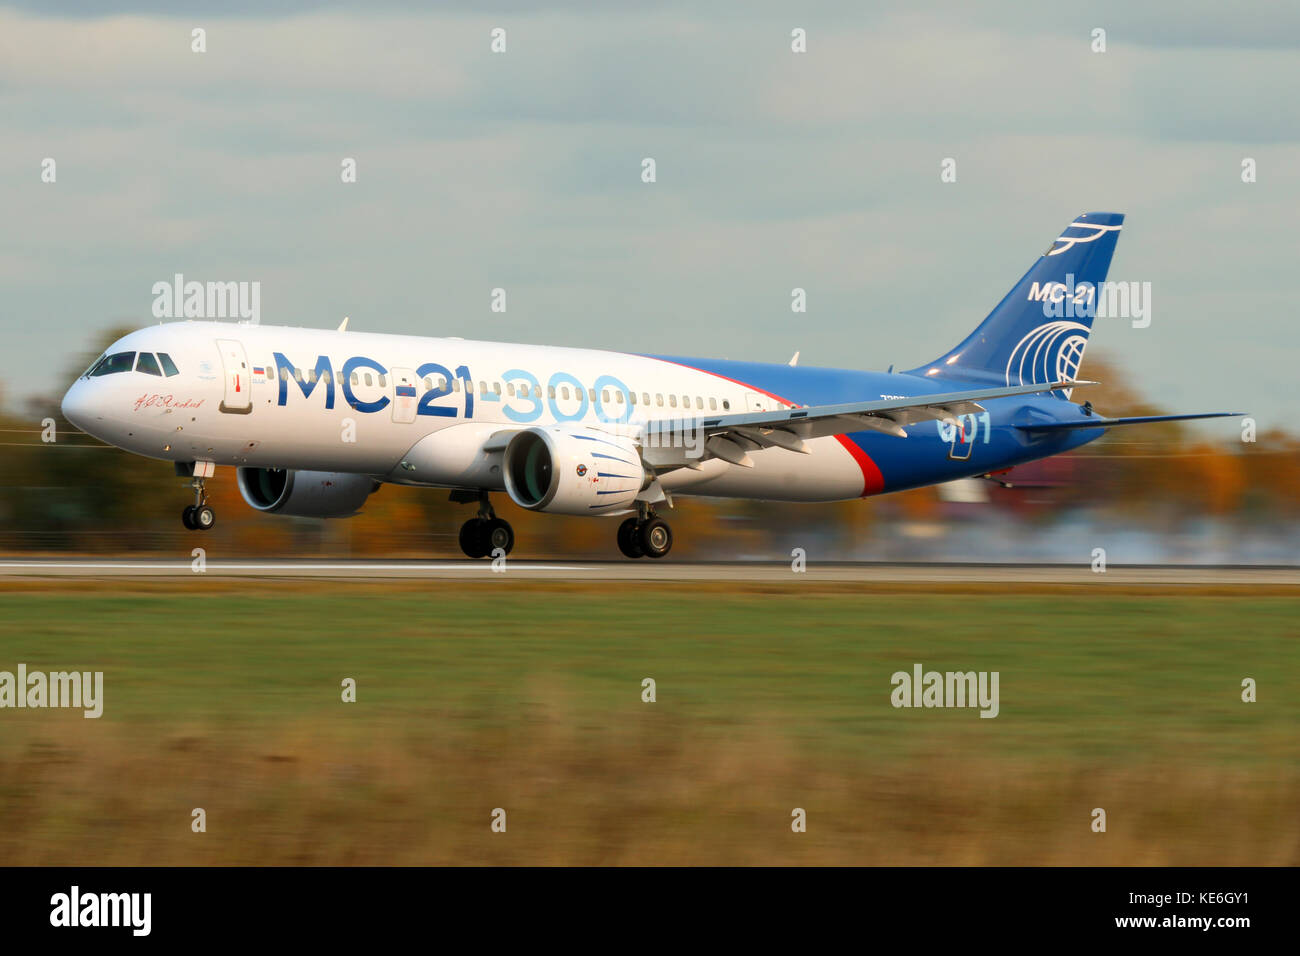 Zhukovsky, Moscow Region, Russia - October 17, 2017: Irkut MS-21 73051 first flying prototype of a new Russian civil - Stock Image